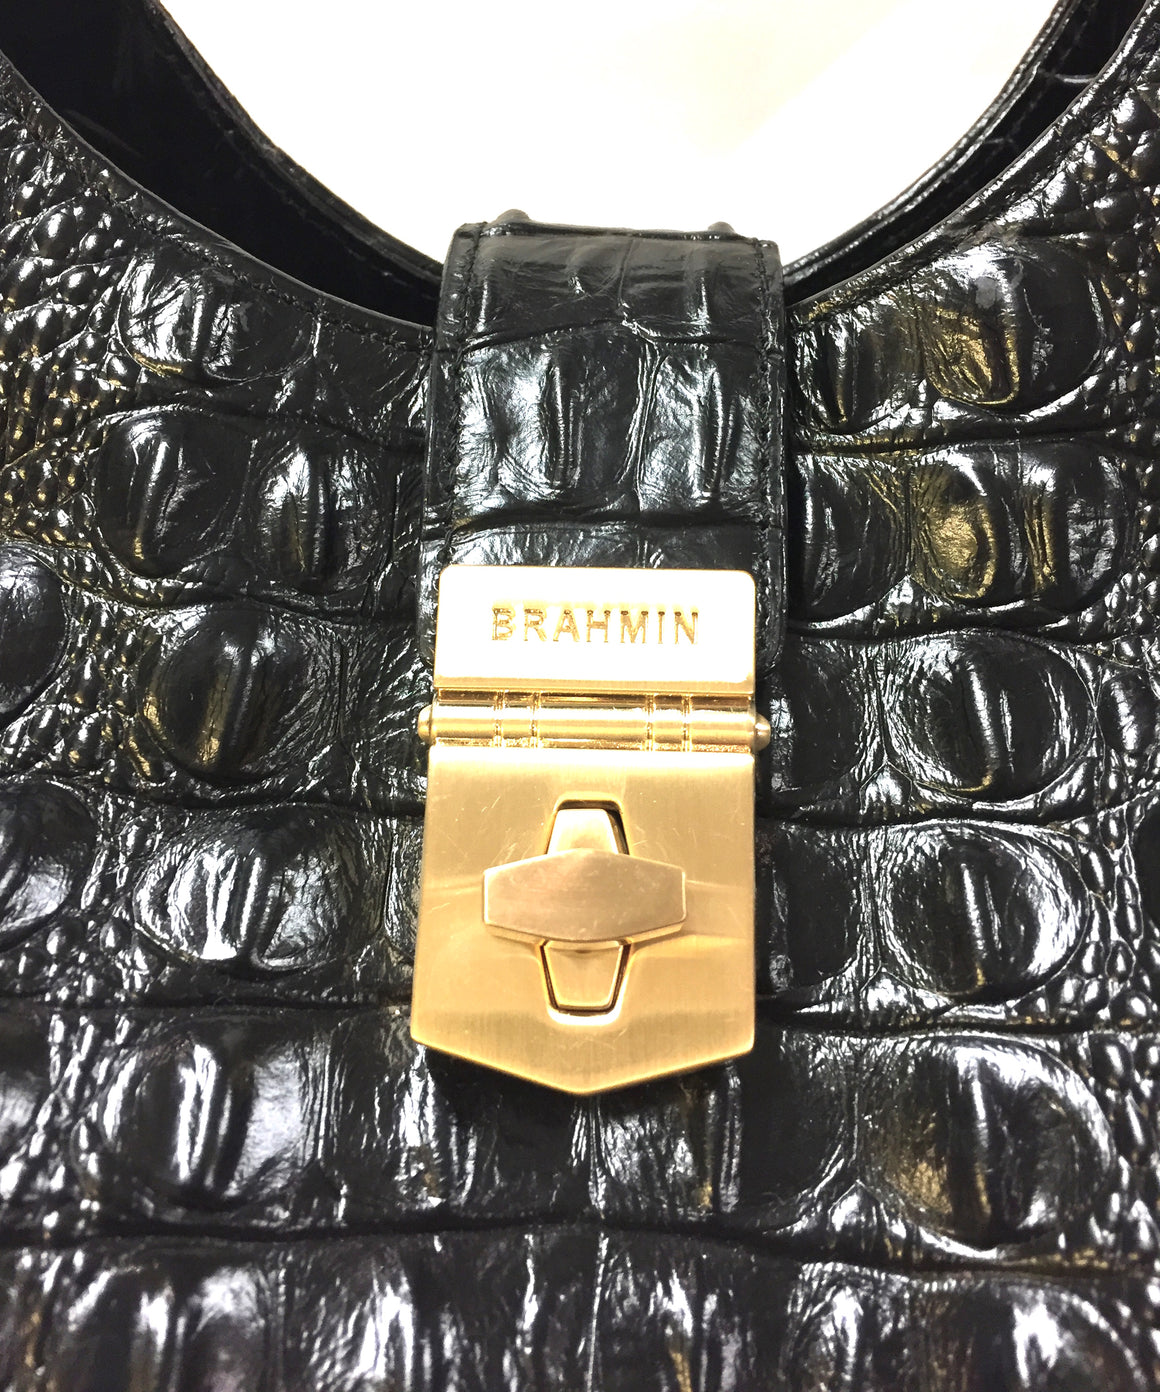 BRAHMIN  Black Croc-Patterned Leather ELISA BLACK MELBOURNE Shoulder Hand Bag